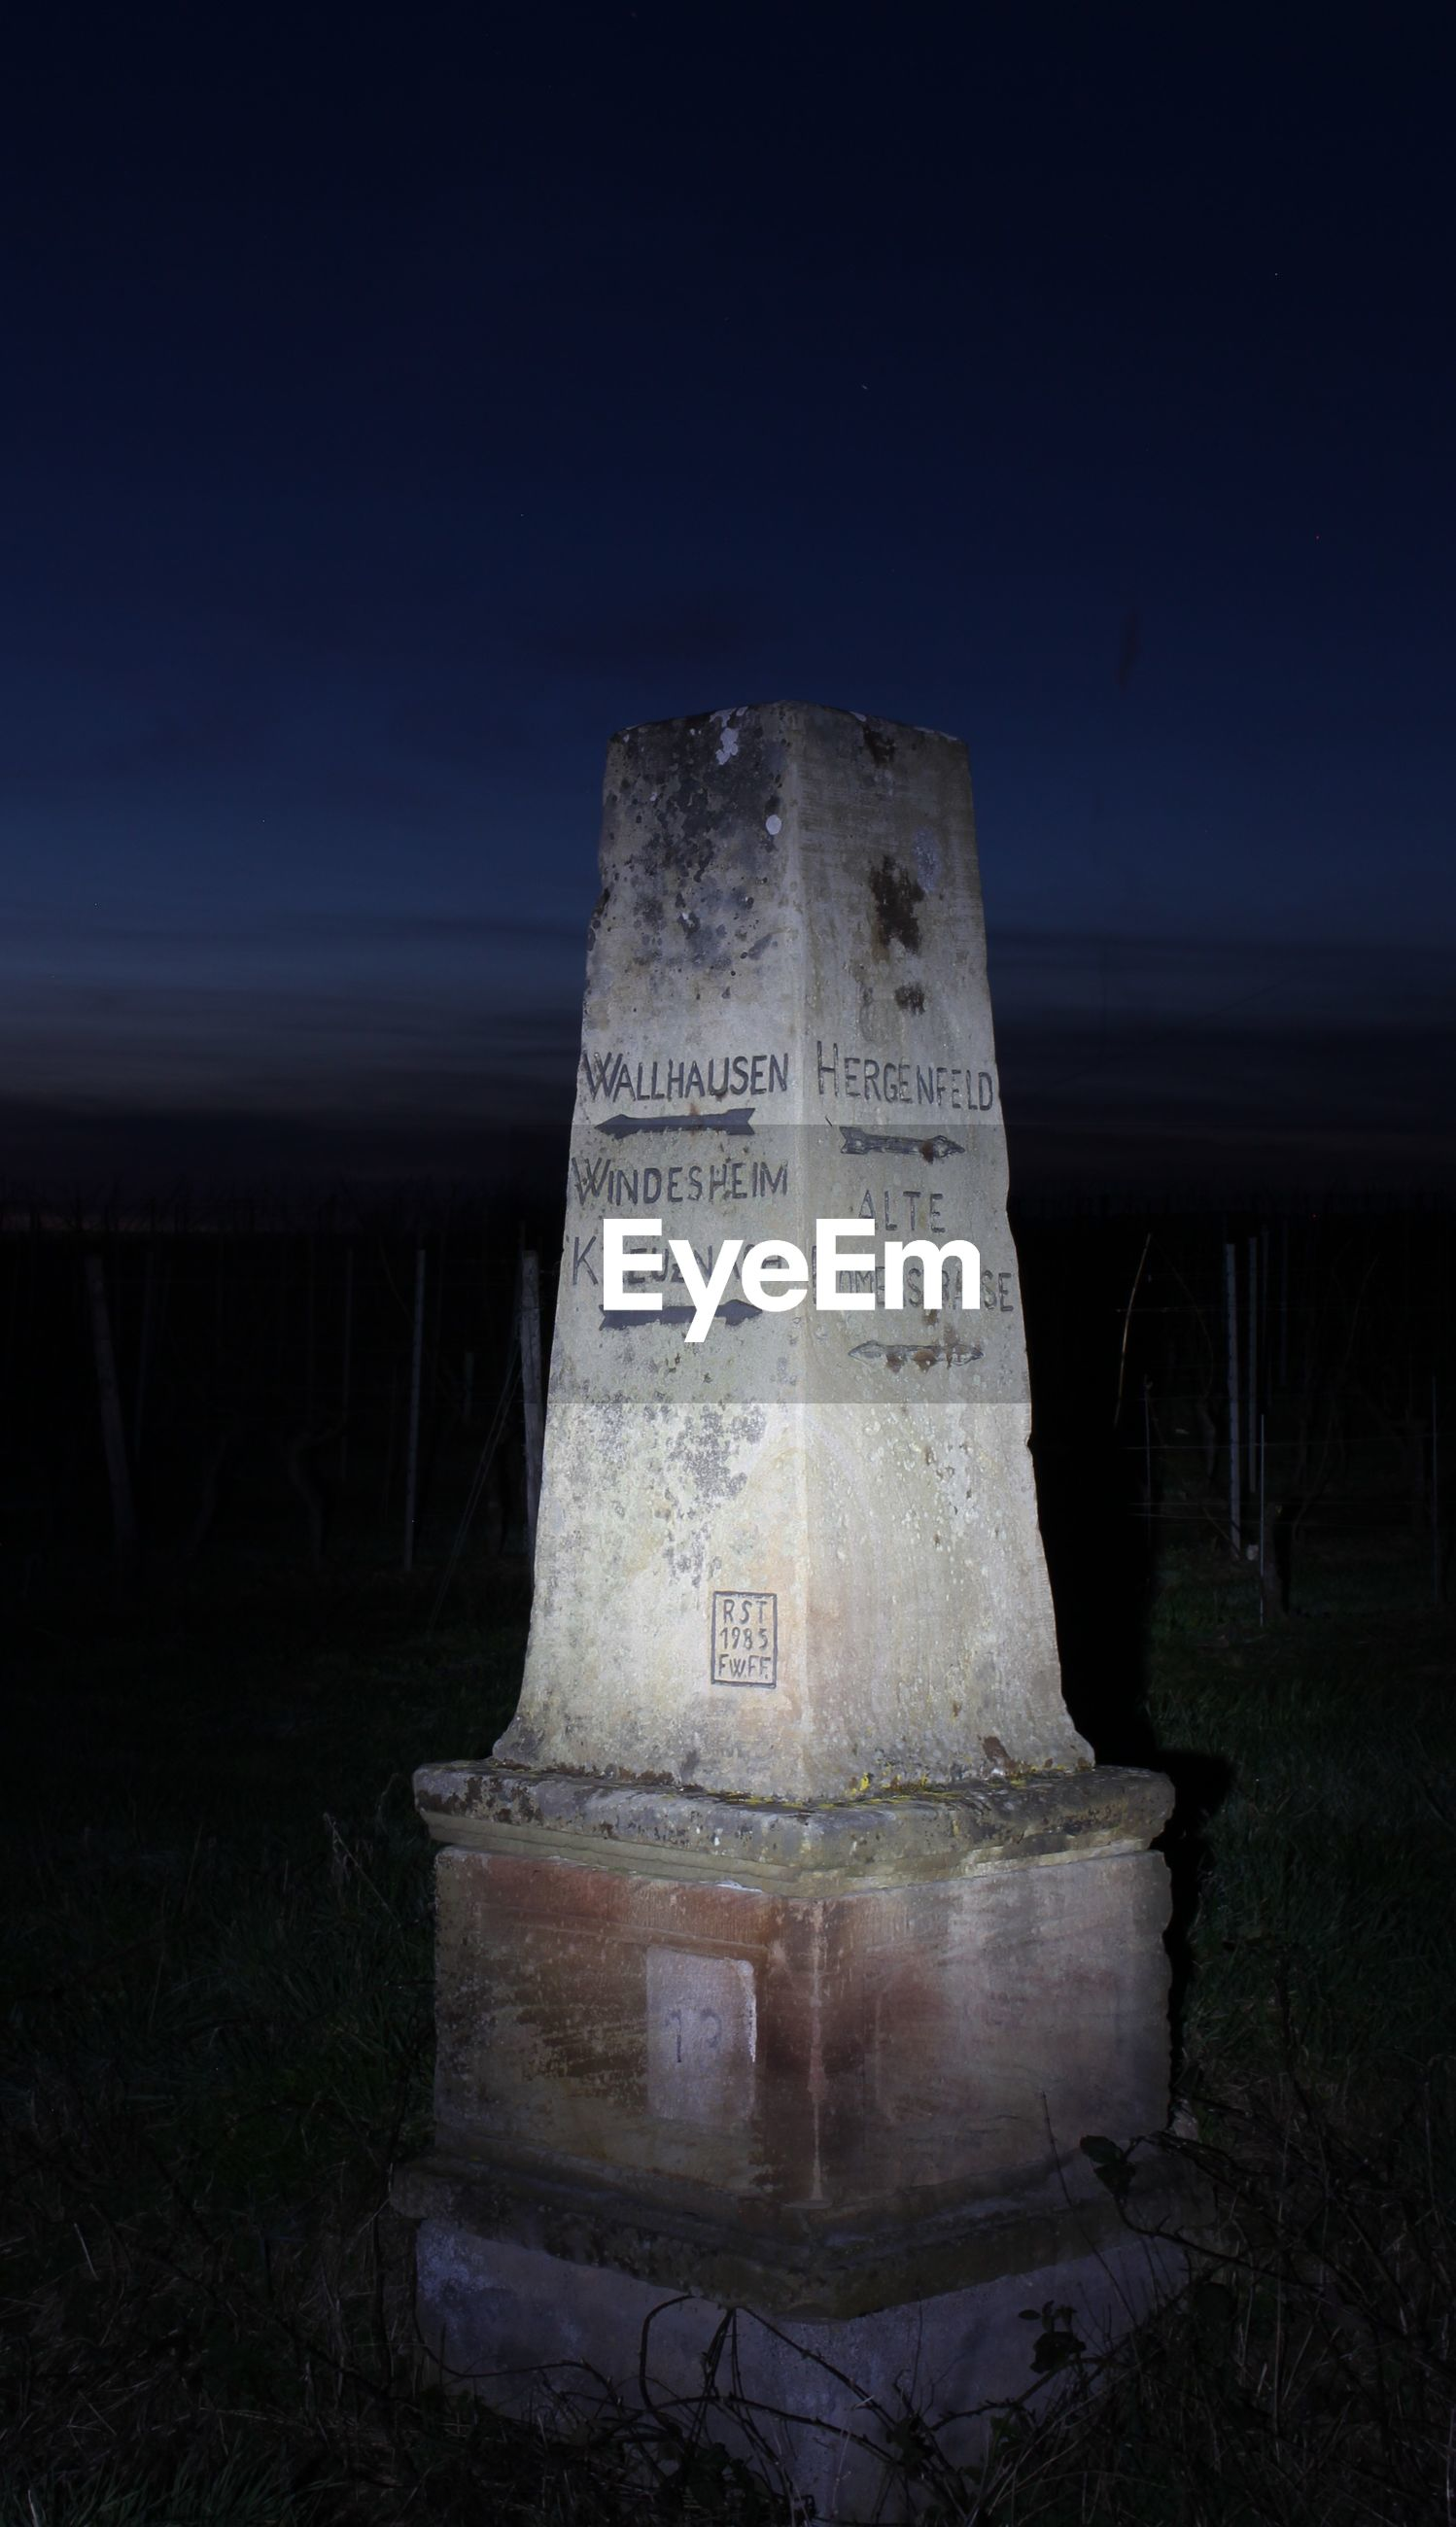 INFORMATION SIGN ON FIELD AGAINST CLEAR SKY AT NIGHT